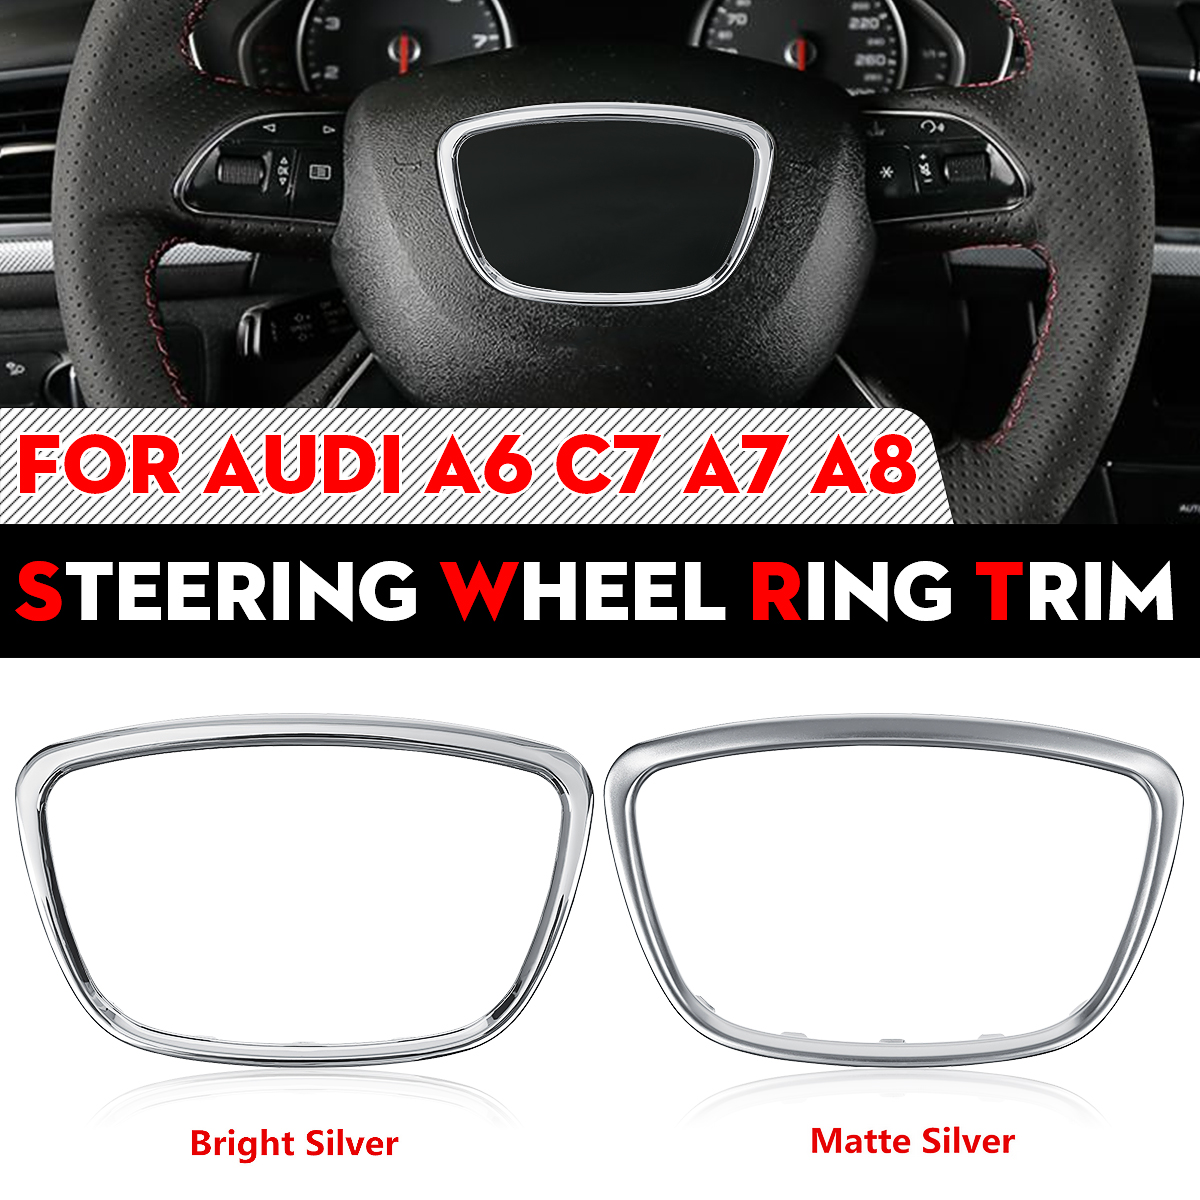 ABS Chrome Steering Wheel Decoration Sticker Trim Sequins Cover Cap Ring For Audi A6 C6 C7 A7 A8 2009 2010 2011 2012 2013 - 2017 image